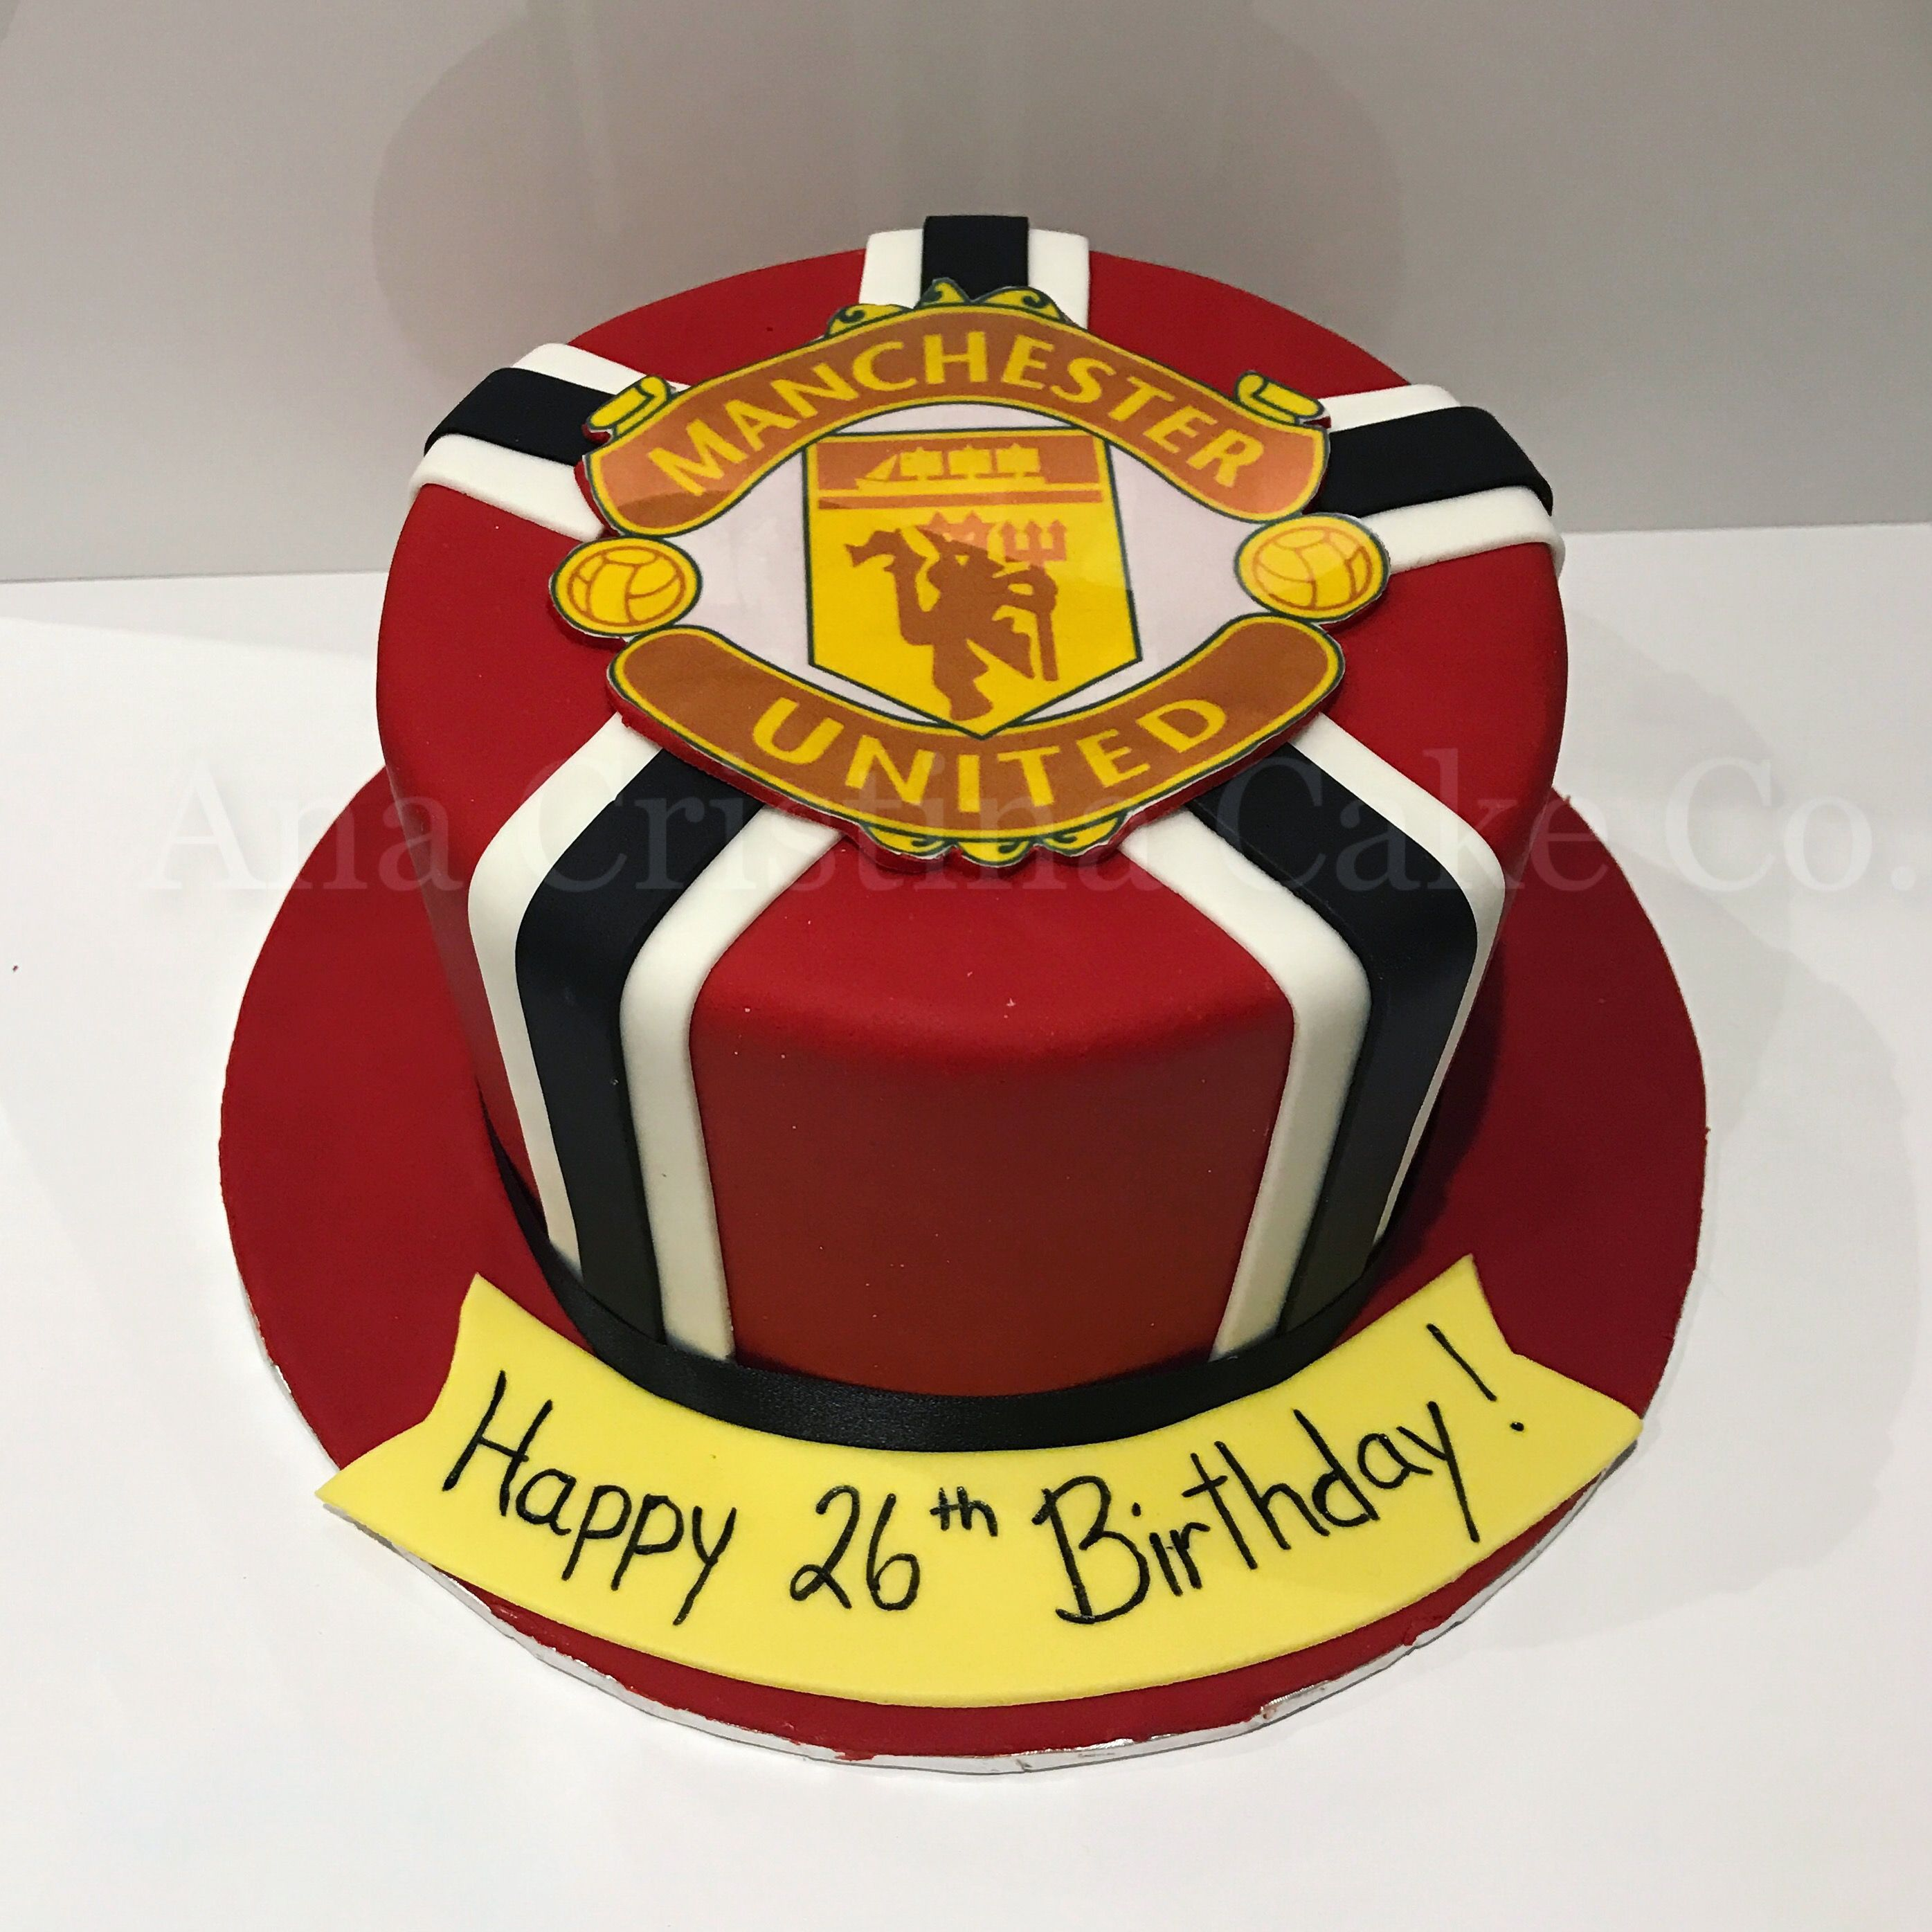 manchester united cake manchester united birthday cake football birthday cake manchester united cake manchester united birthday cake